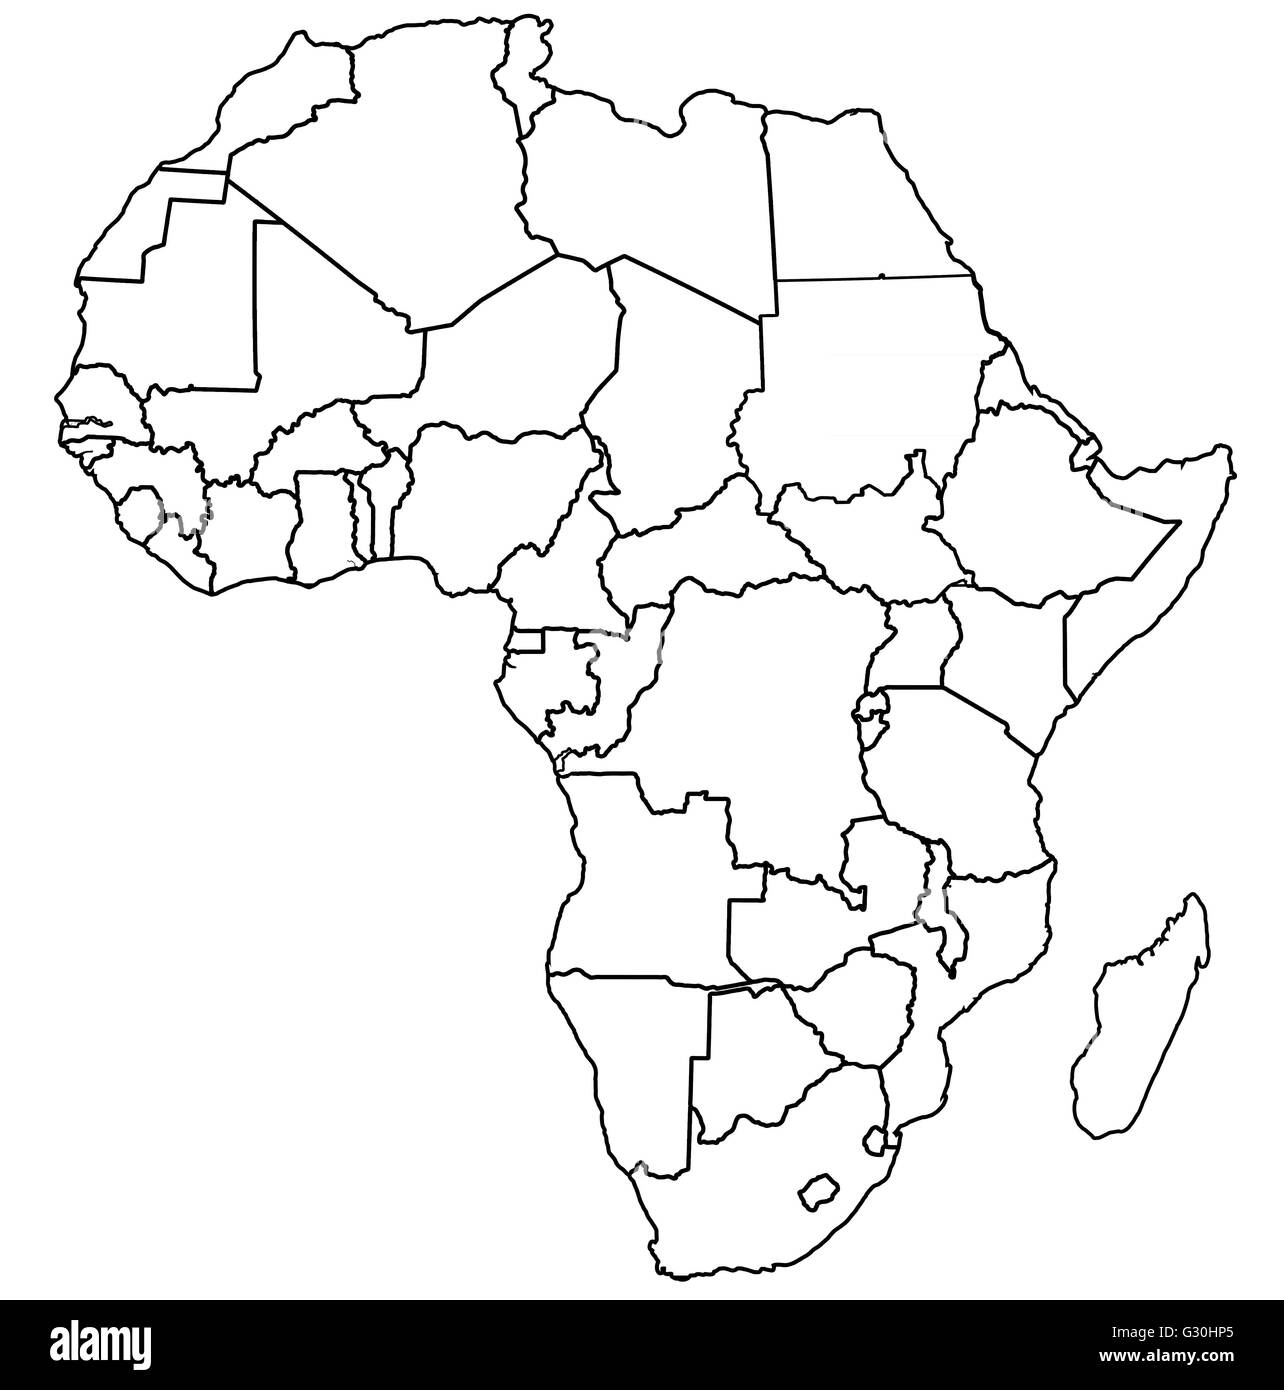 Political Map Of Africa Black And White Stock Photos